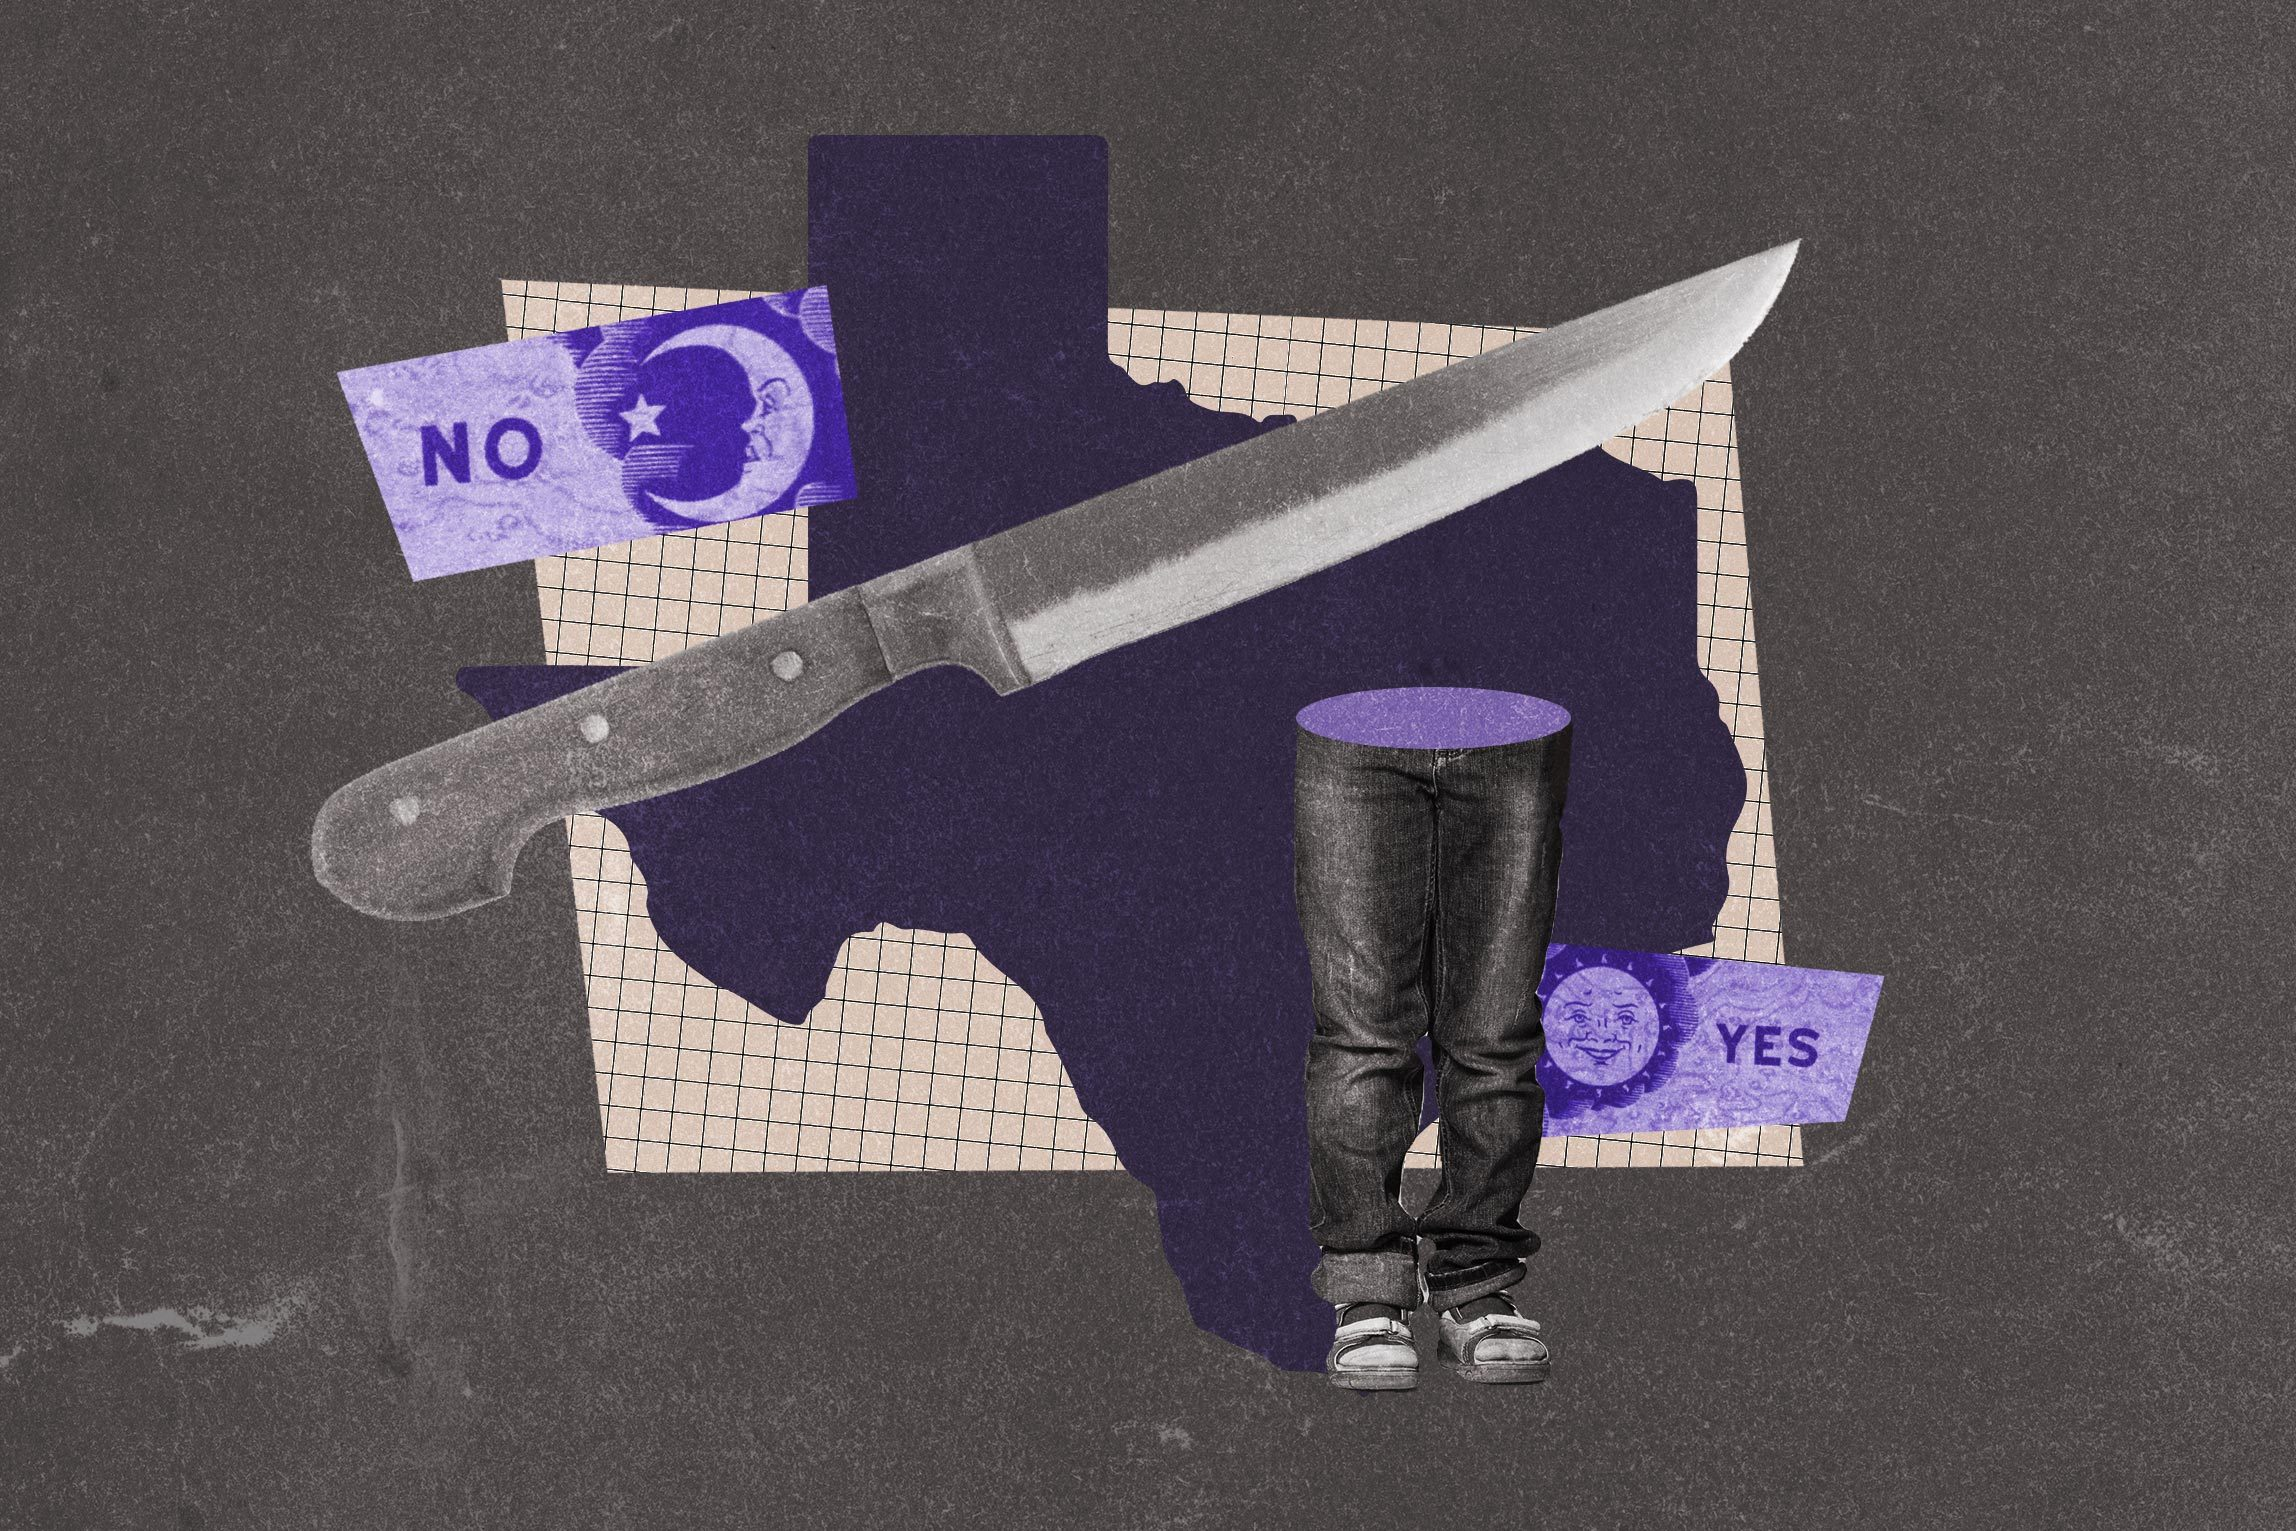 Collage of the state of Texas, knife, boy